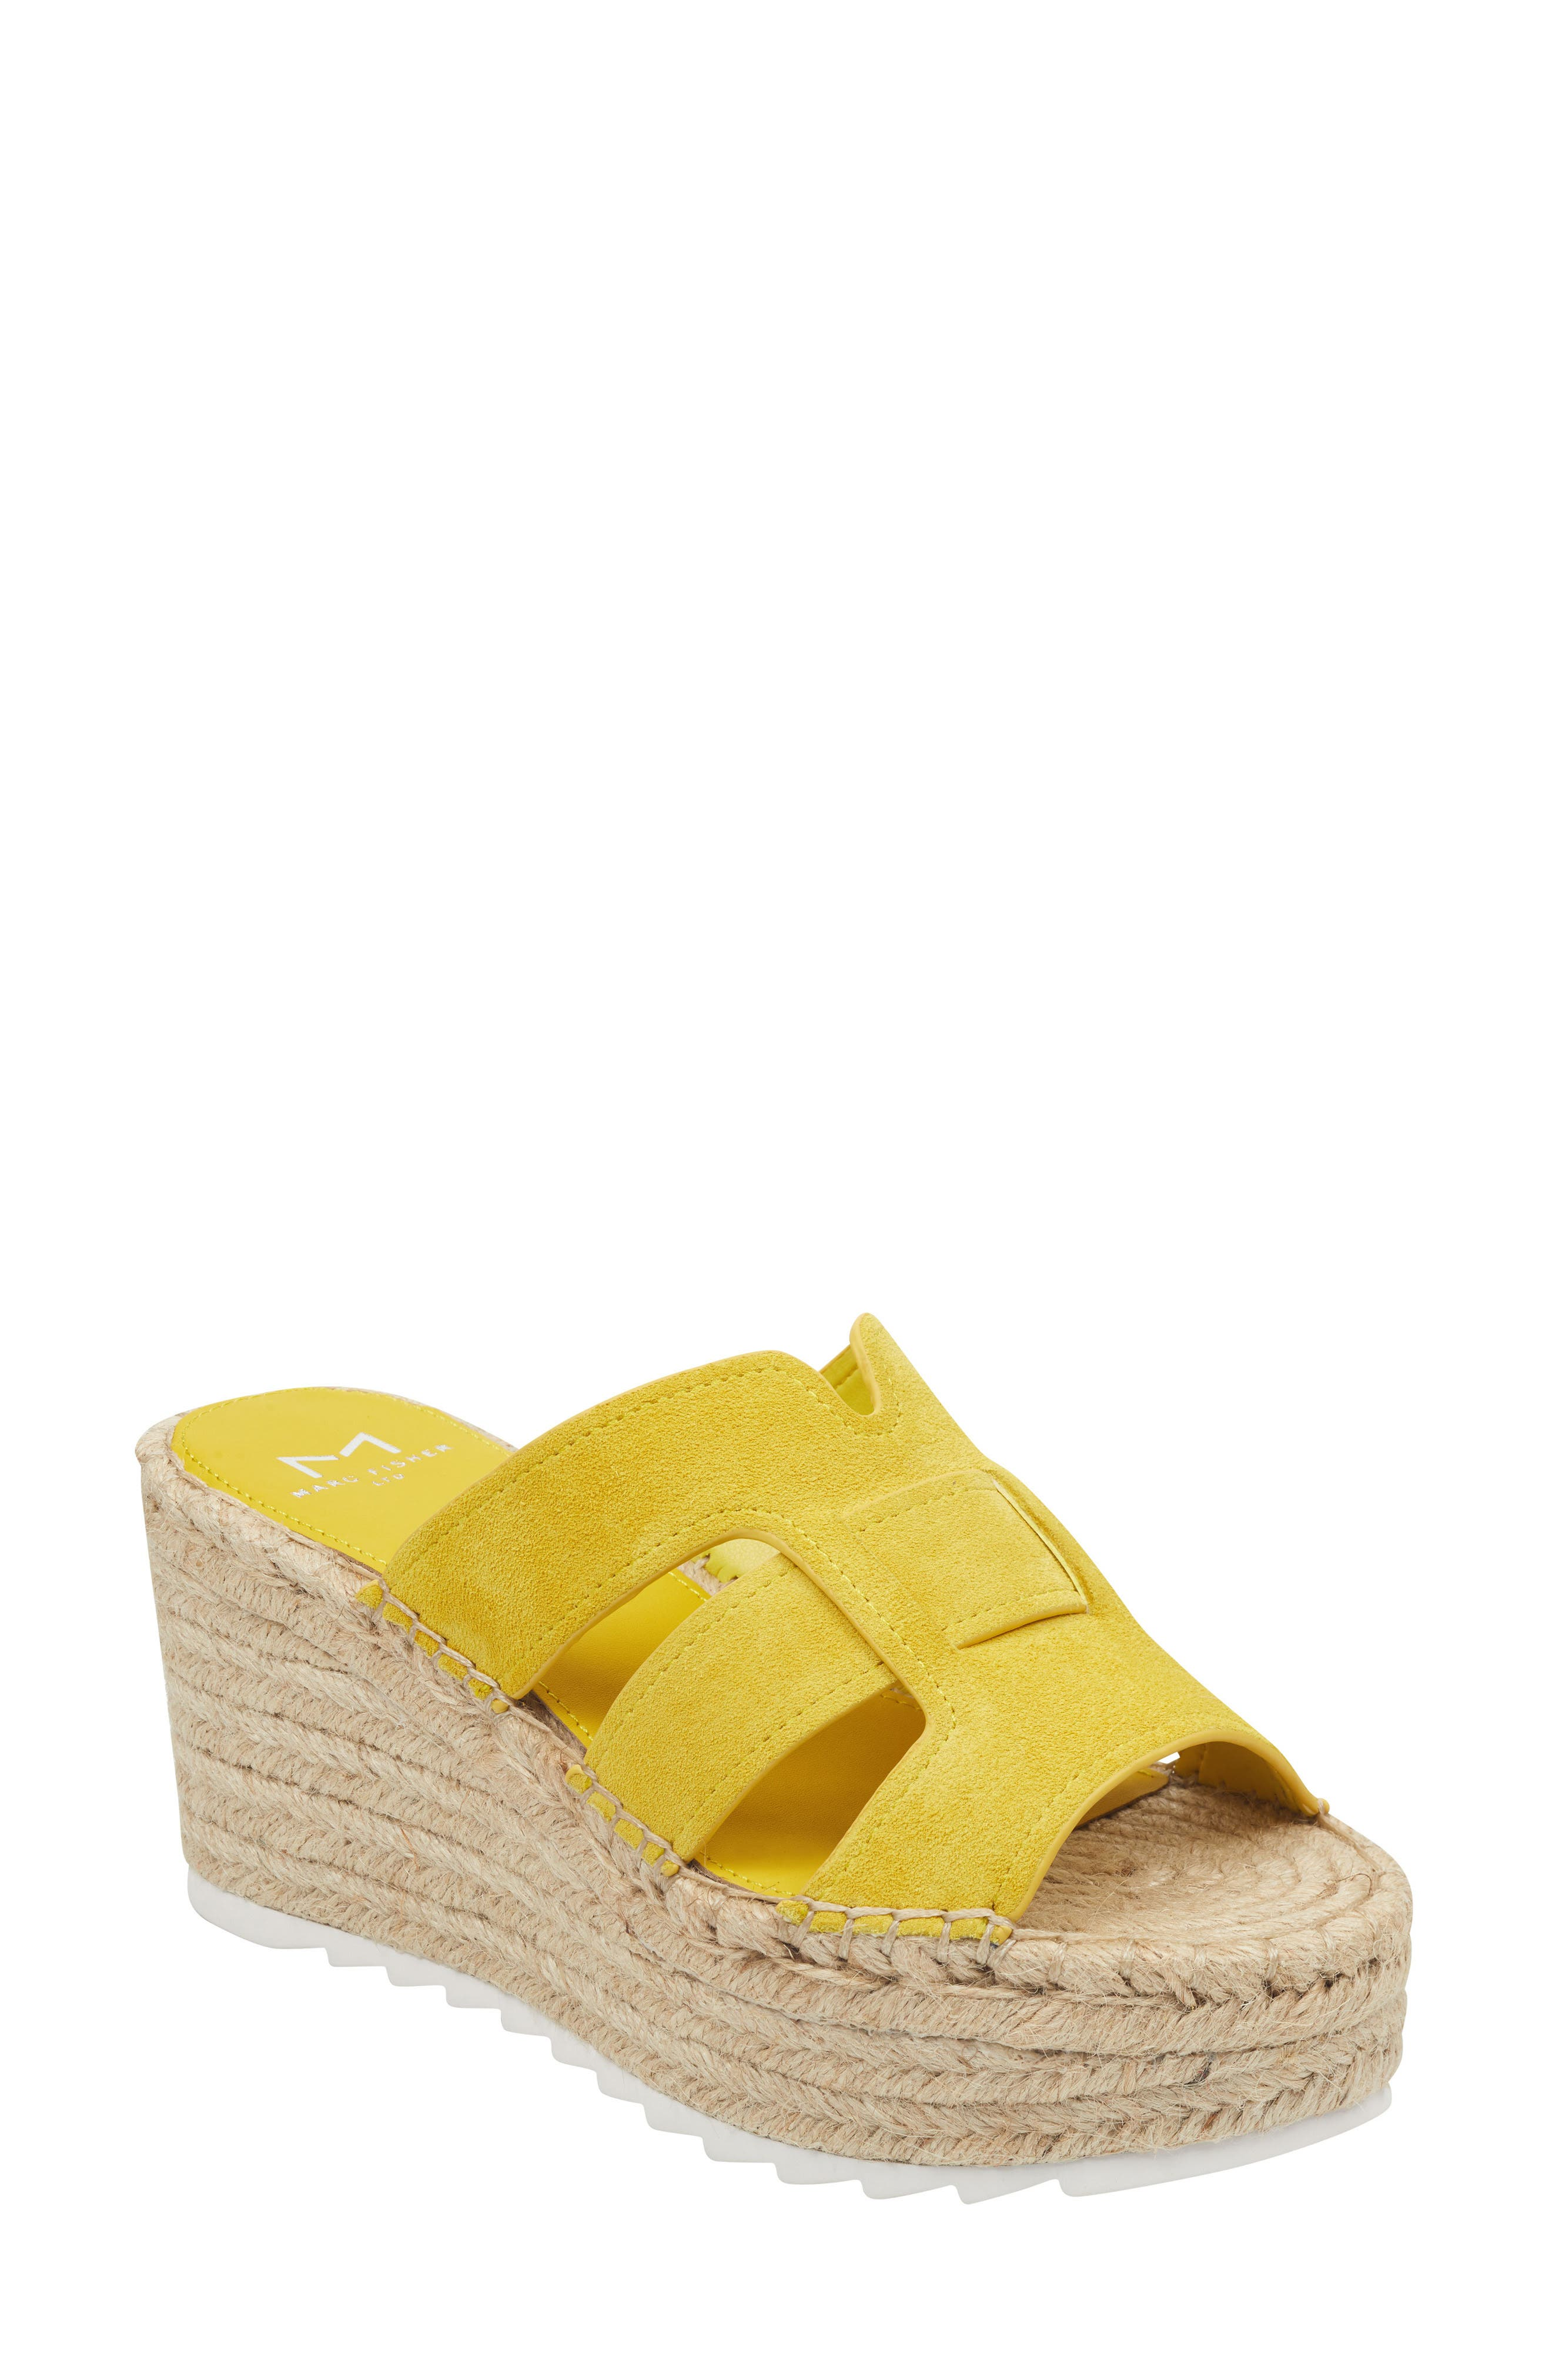 MARC FISHER LTD Robbyn Espadrille Wedge Sandal, Main, color, YELLOW SUEDE